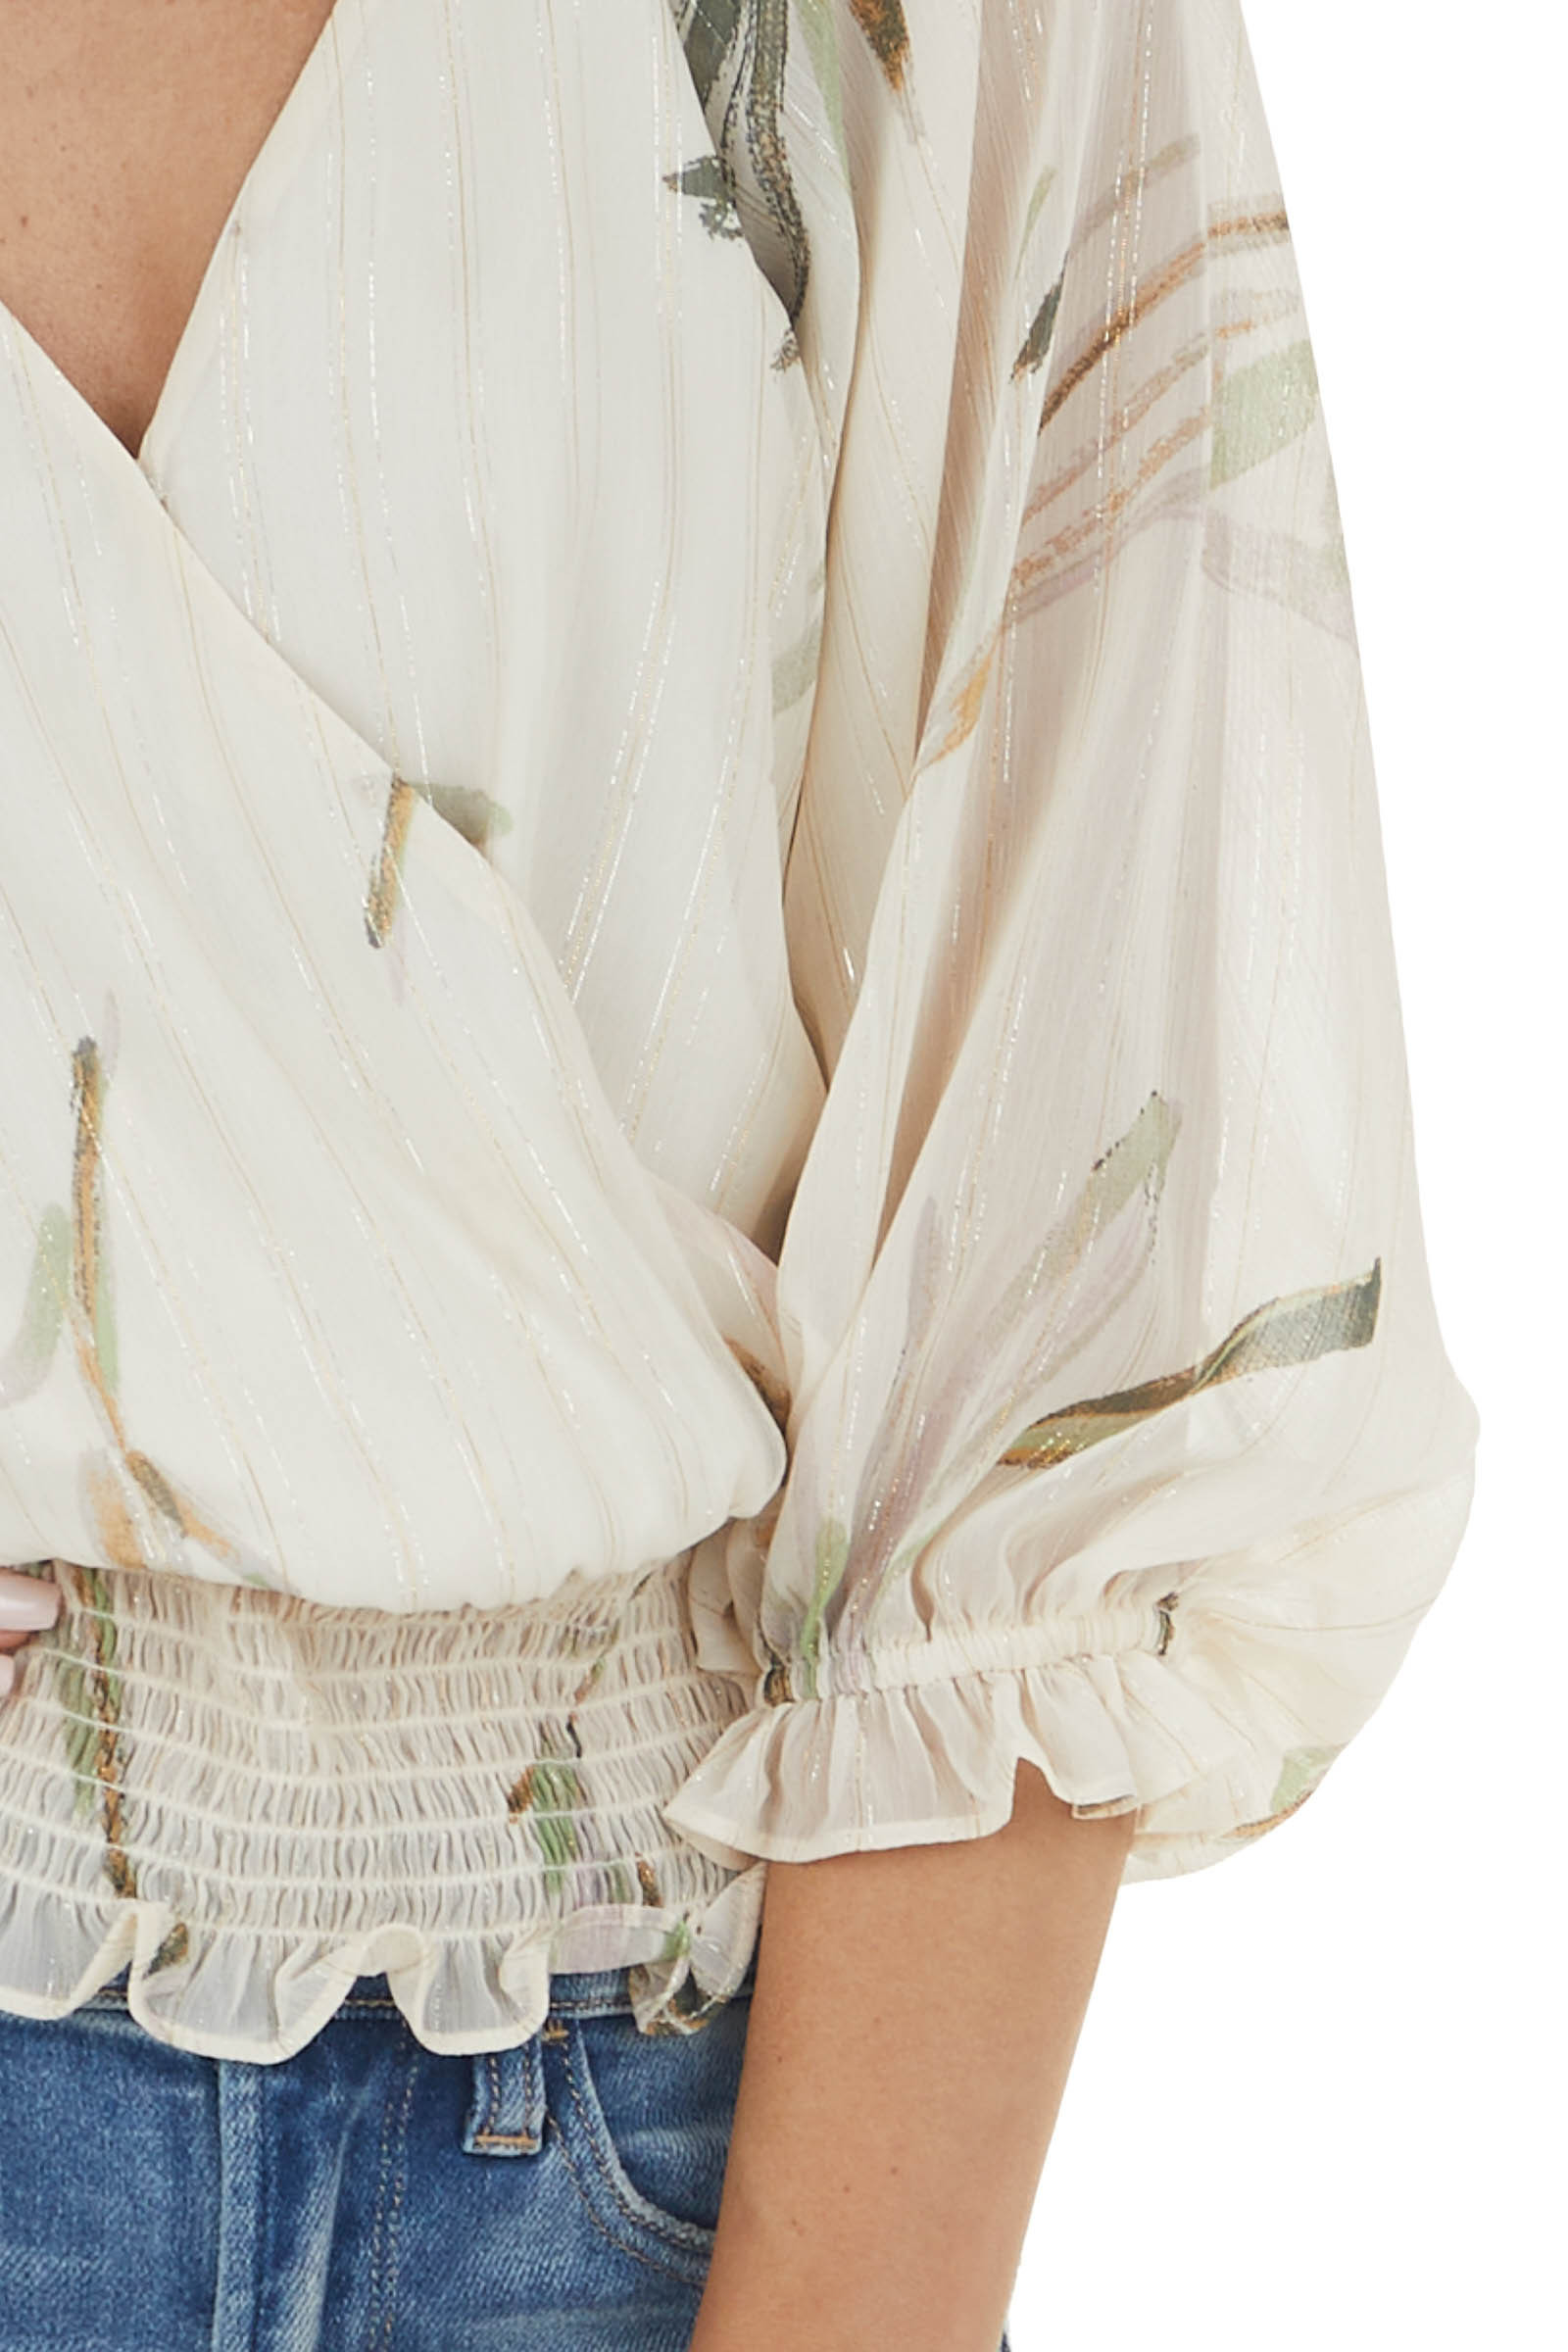 Vanilla Woven Surplice Top with Abstract Leaf Details